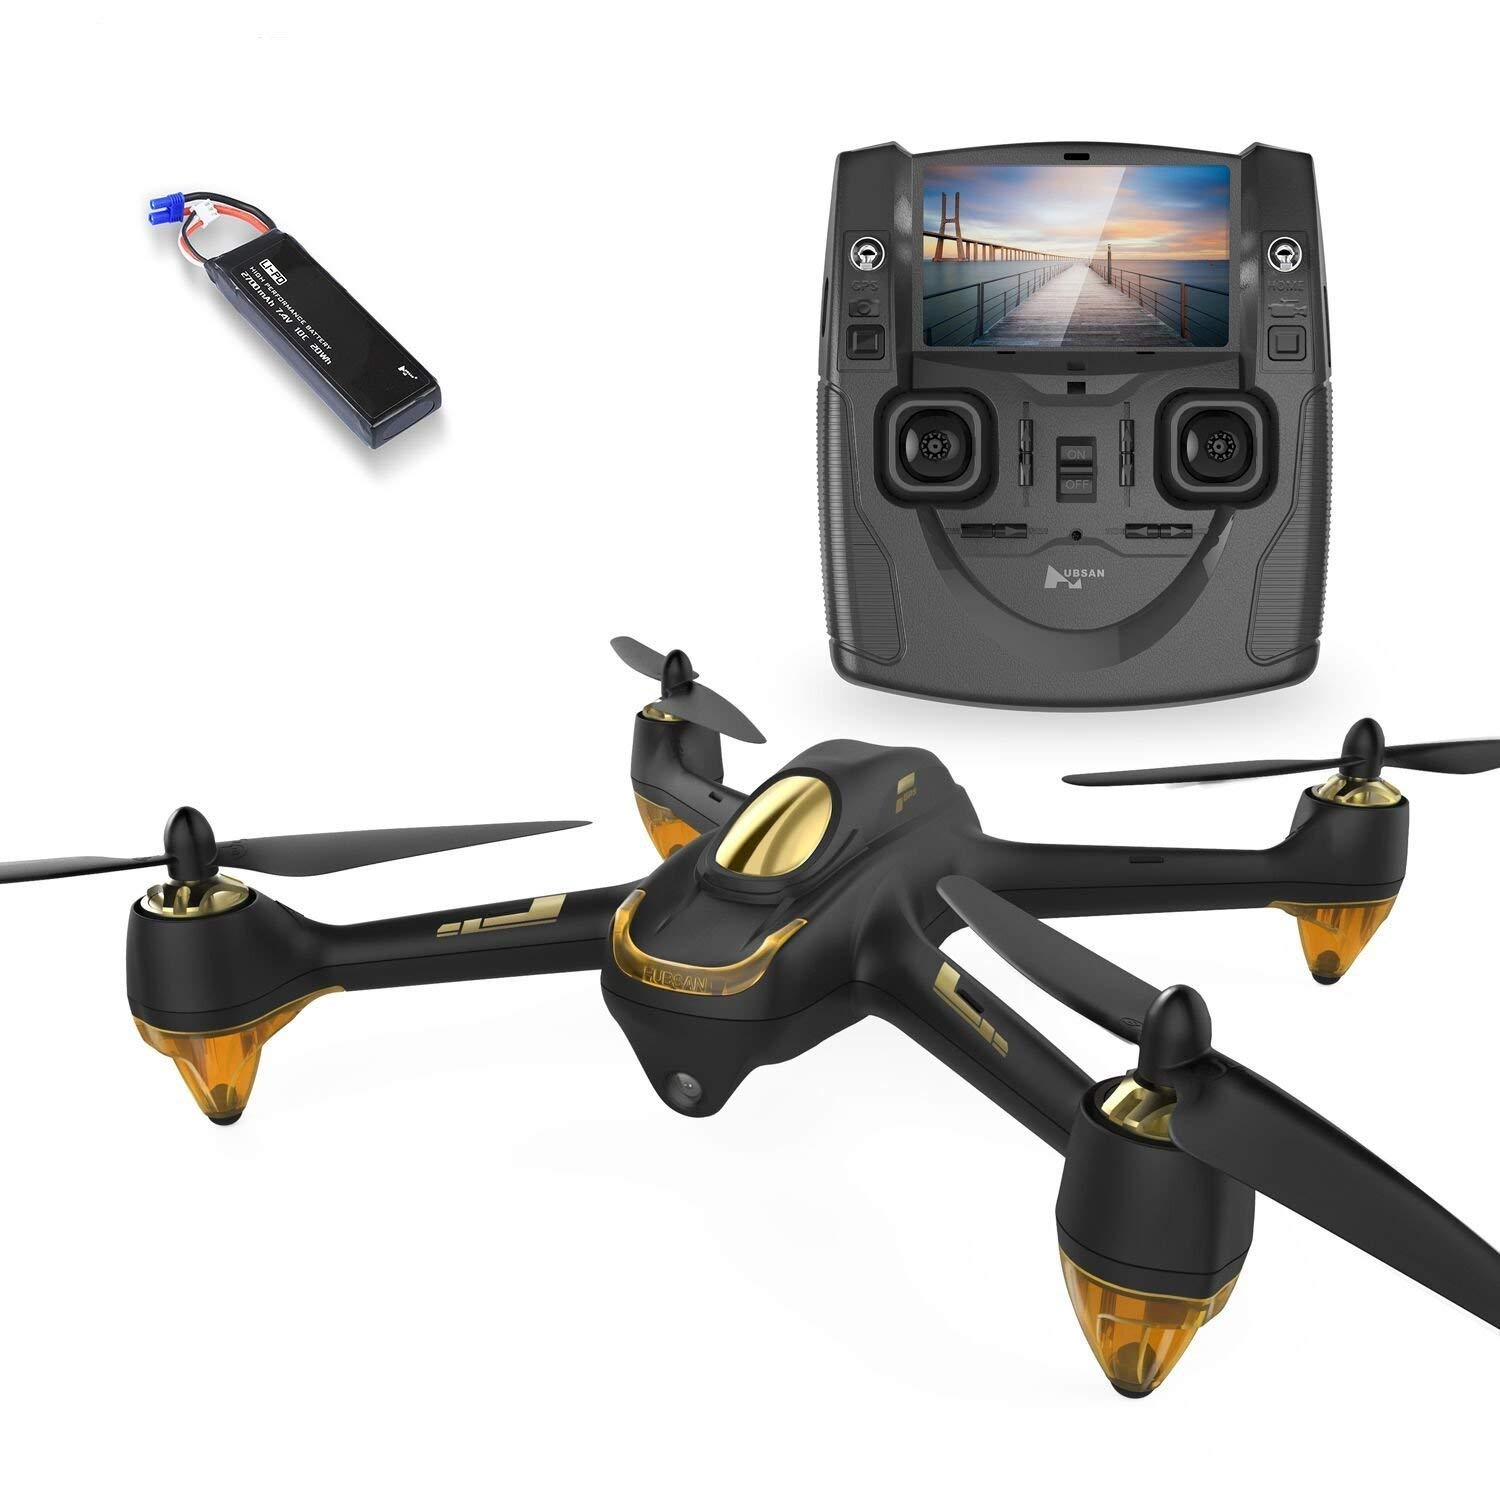 Hubsan JYZ drone H501S X4 BRUSHELESS FPV Quadcopter 1080p Camera GPS Automatic Return Altitude Hold Headless Mode Drone (black) by HUBSAN